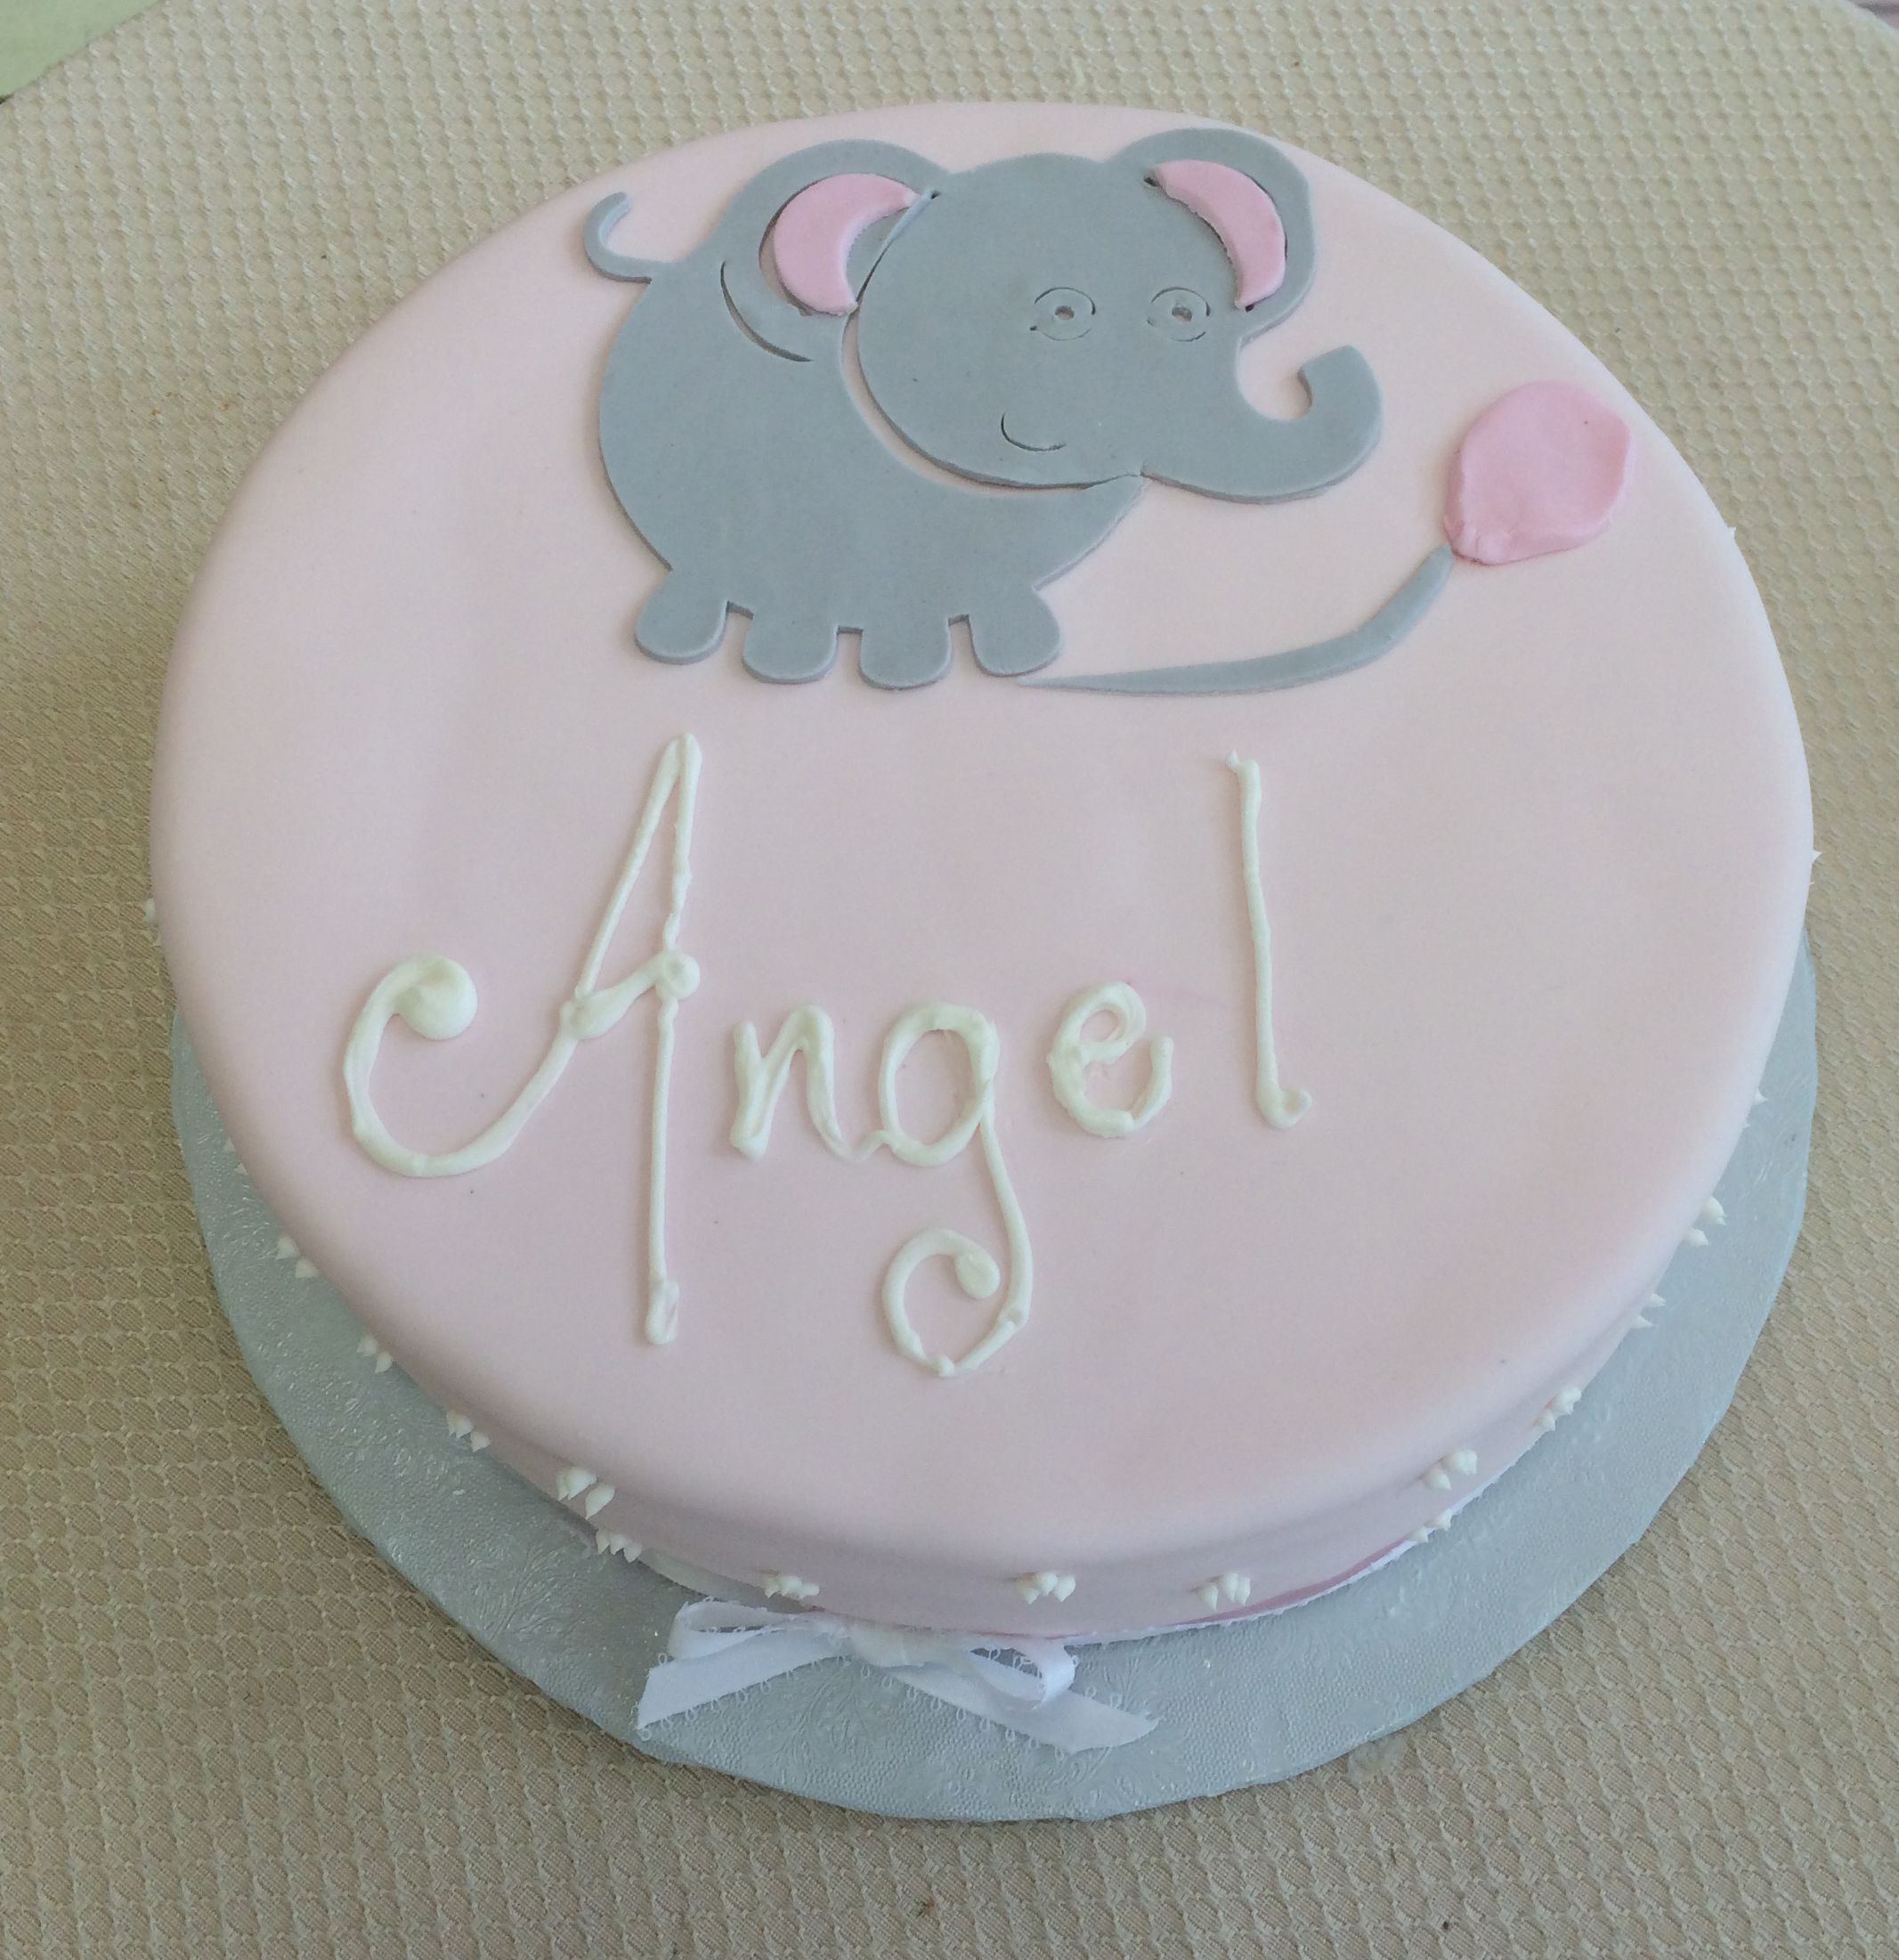 Pink Rolled Fondant with Rolled Fondant Elephant Cut-Out